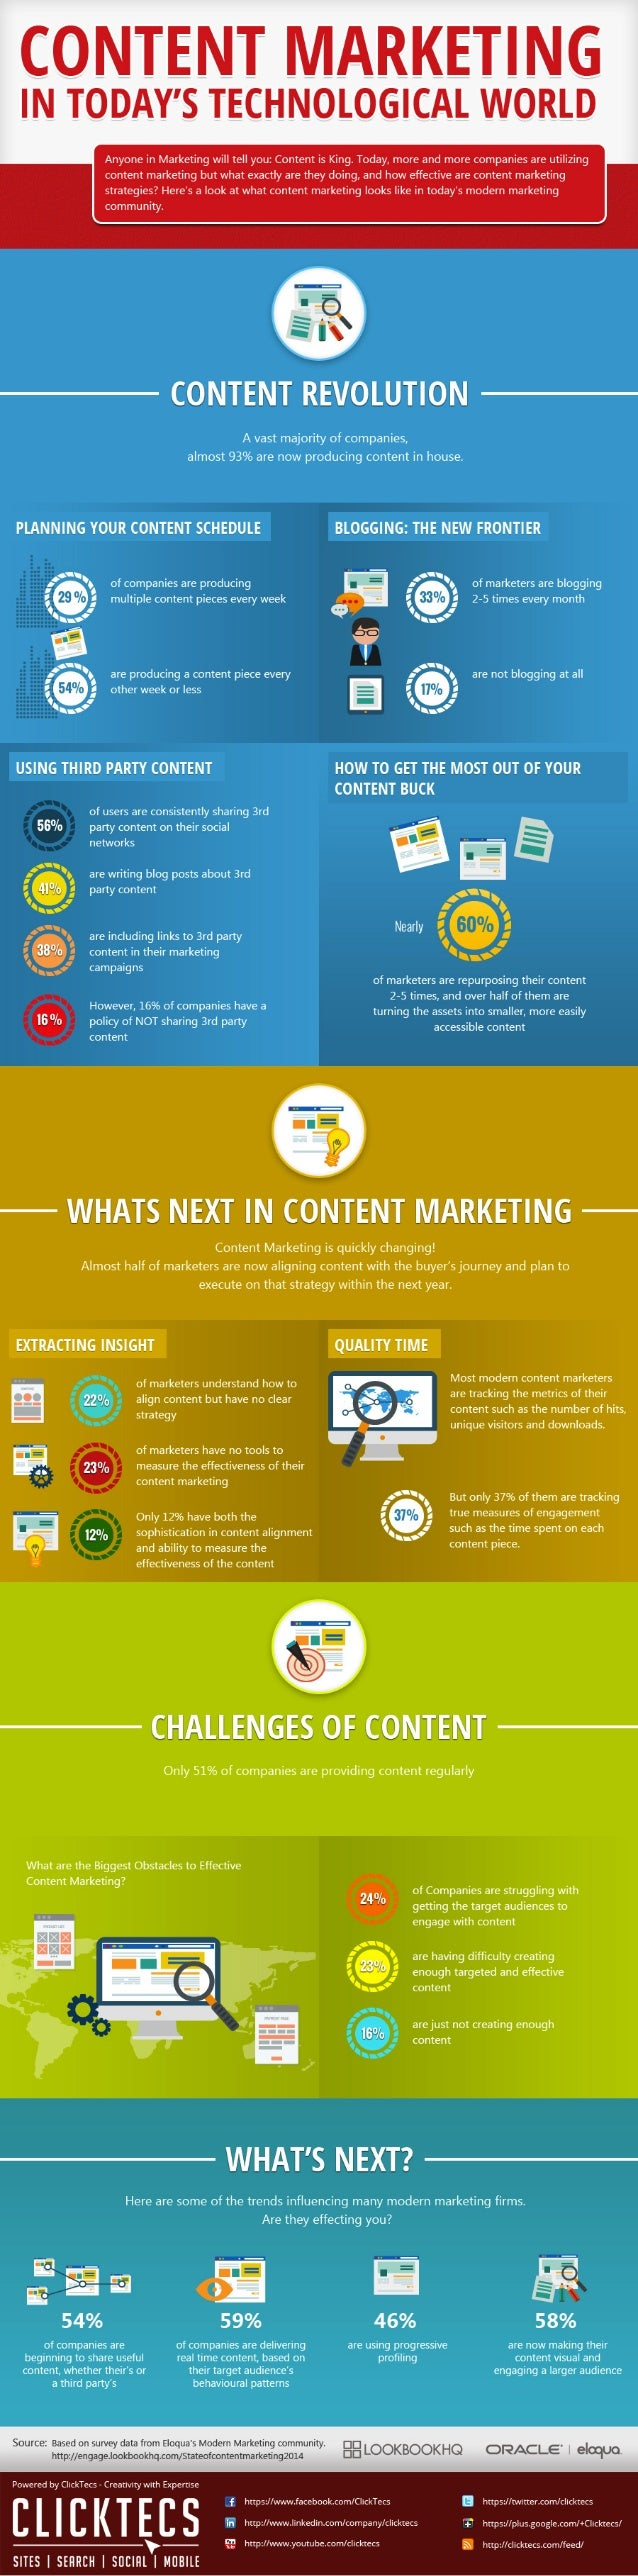 Content Marketing in Today's Technological World